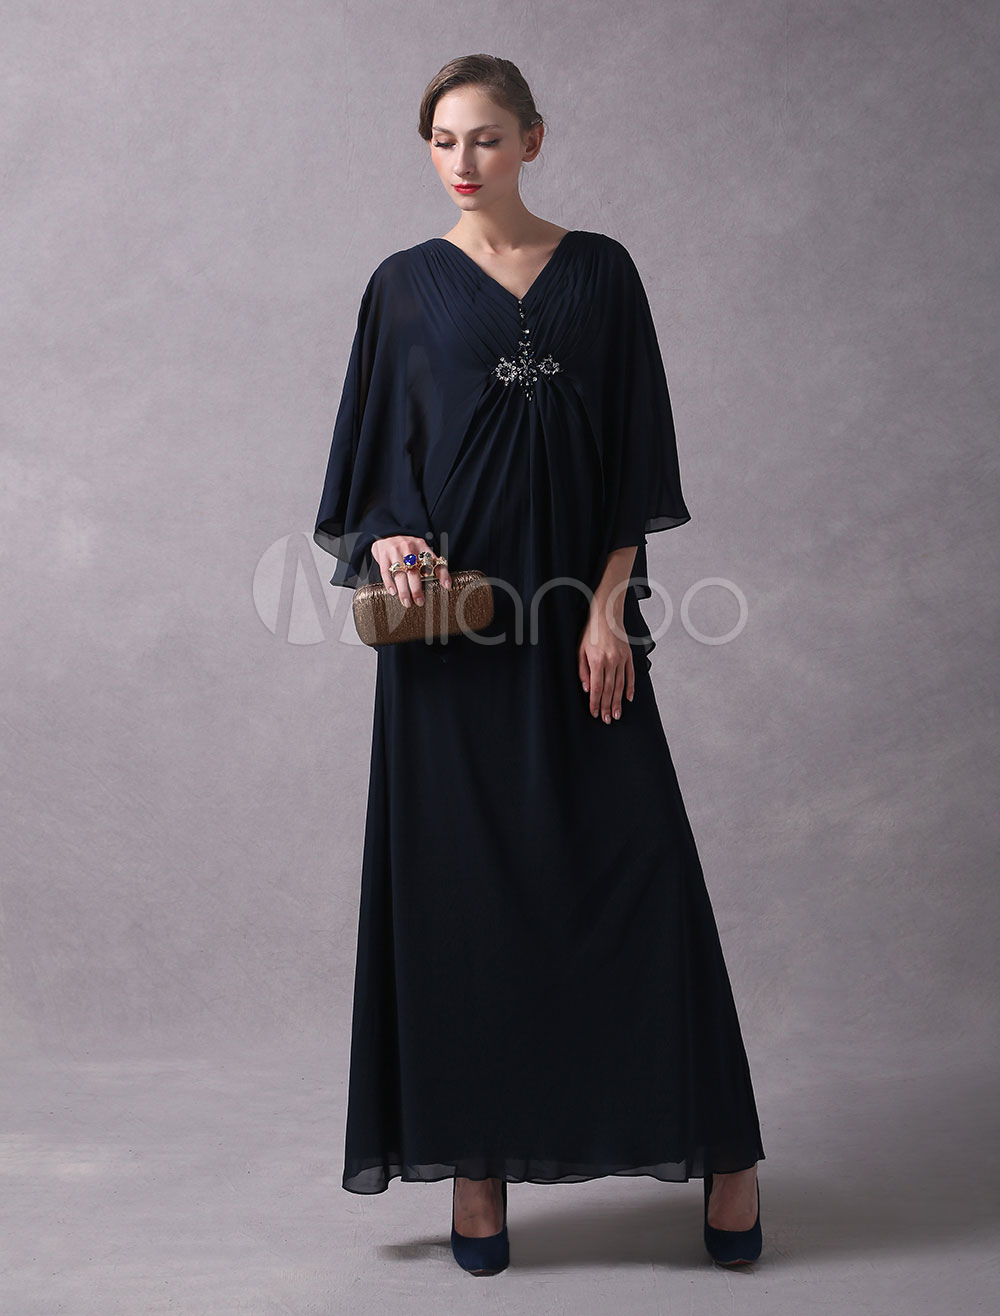 242335027b7 ... Wedding Guest Dress Dark Navy Arabic Mother Of The Bride Dresses Long V  Neck Chiffon Beaded. 12. 45%OFF. Color Dark Navy